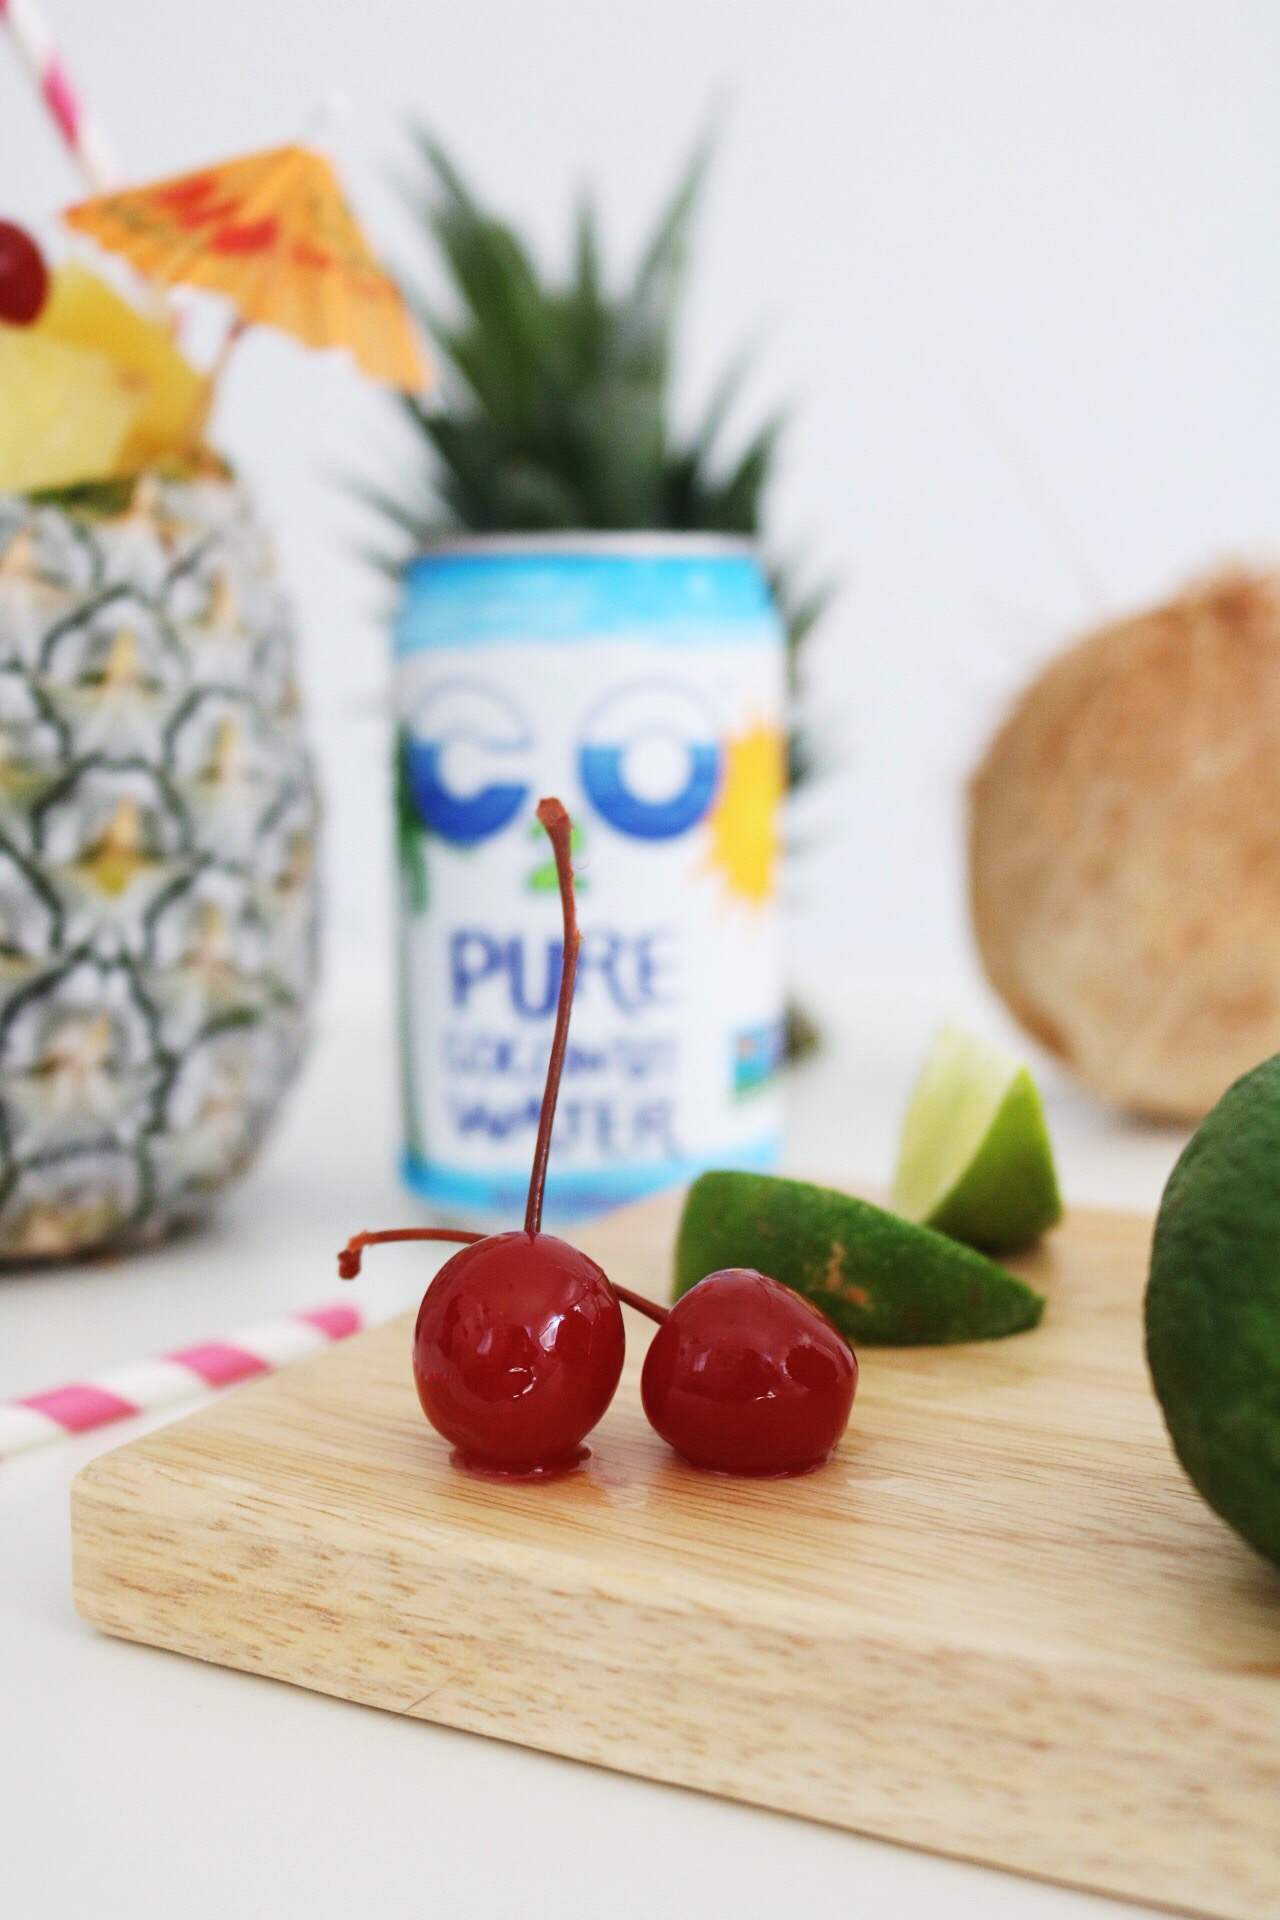 Every good piña colada has multiple garnishes. Like these maraschino cherries and lime wedges!